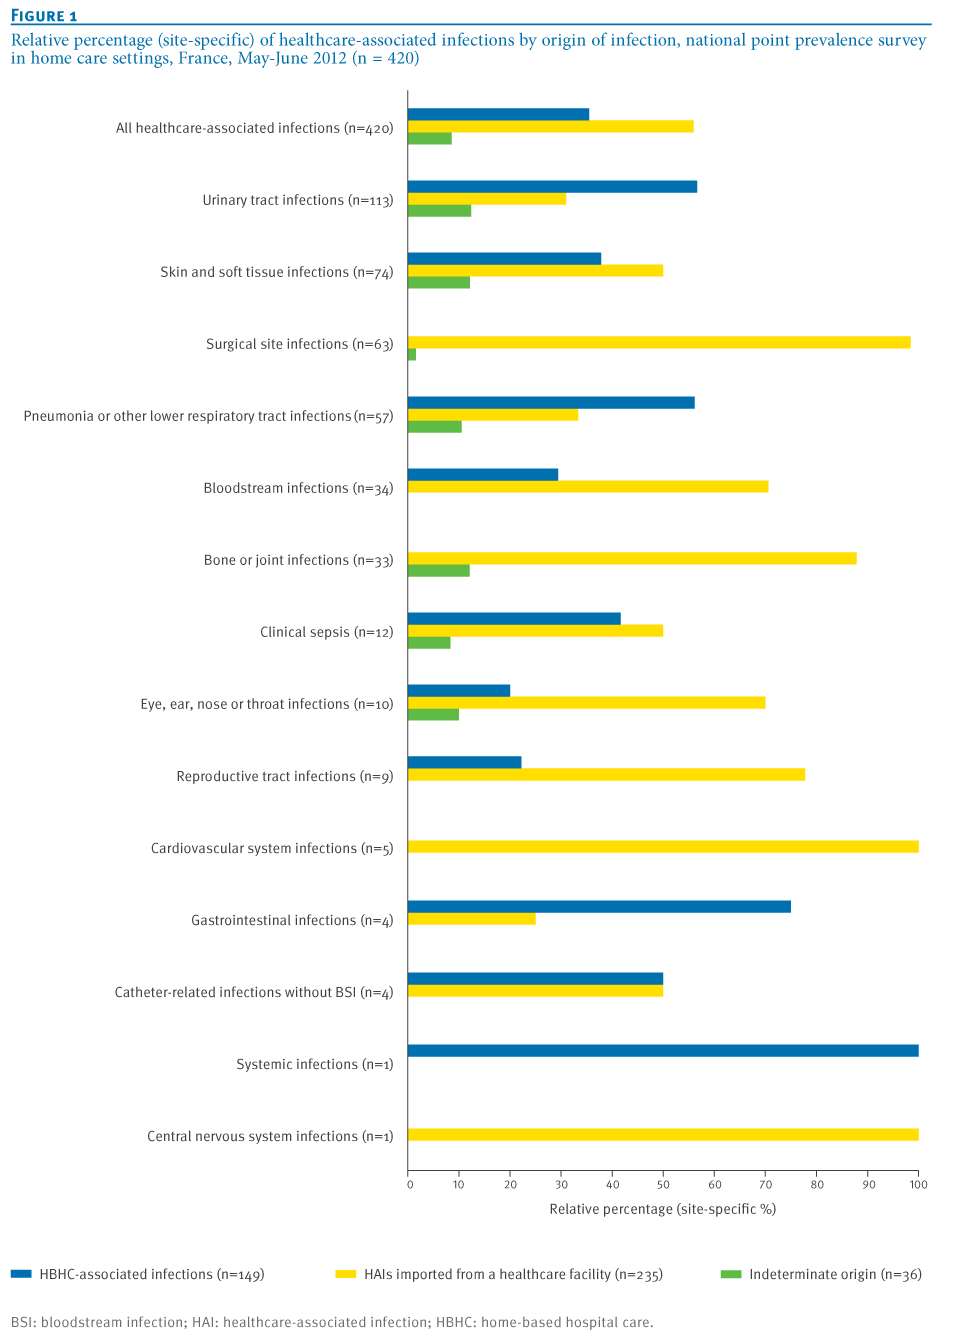 Table Setting In French Eurosurveillance National Point Prevalence Survey Of Healthcare